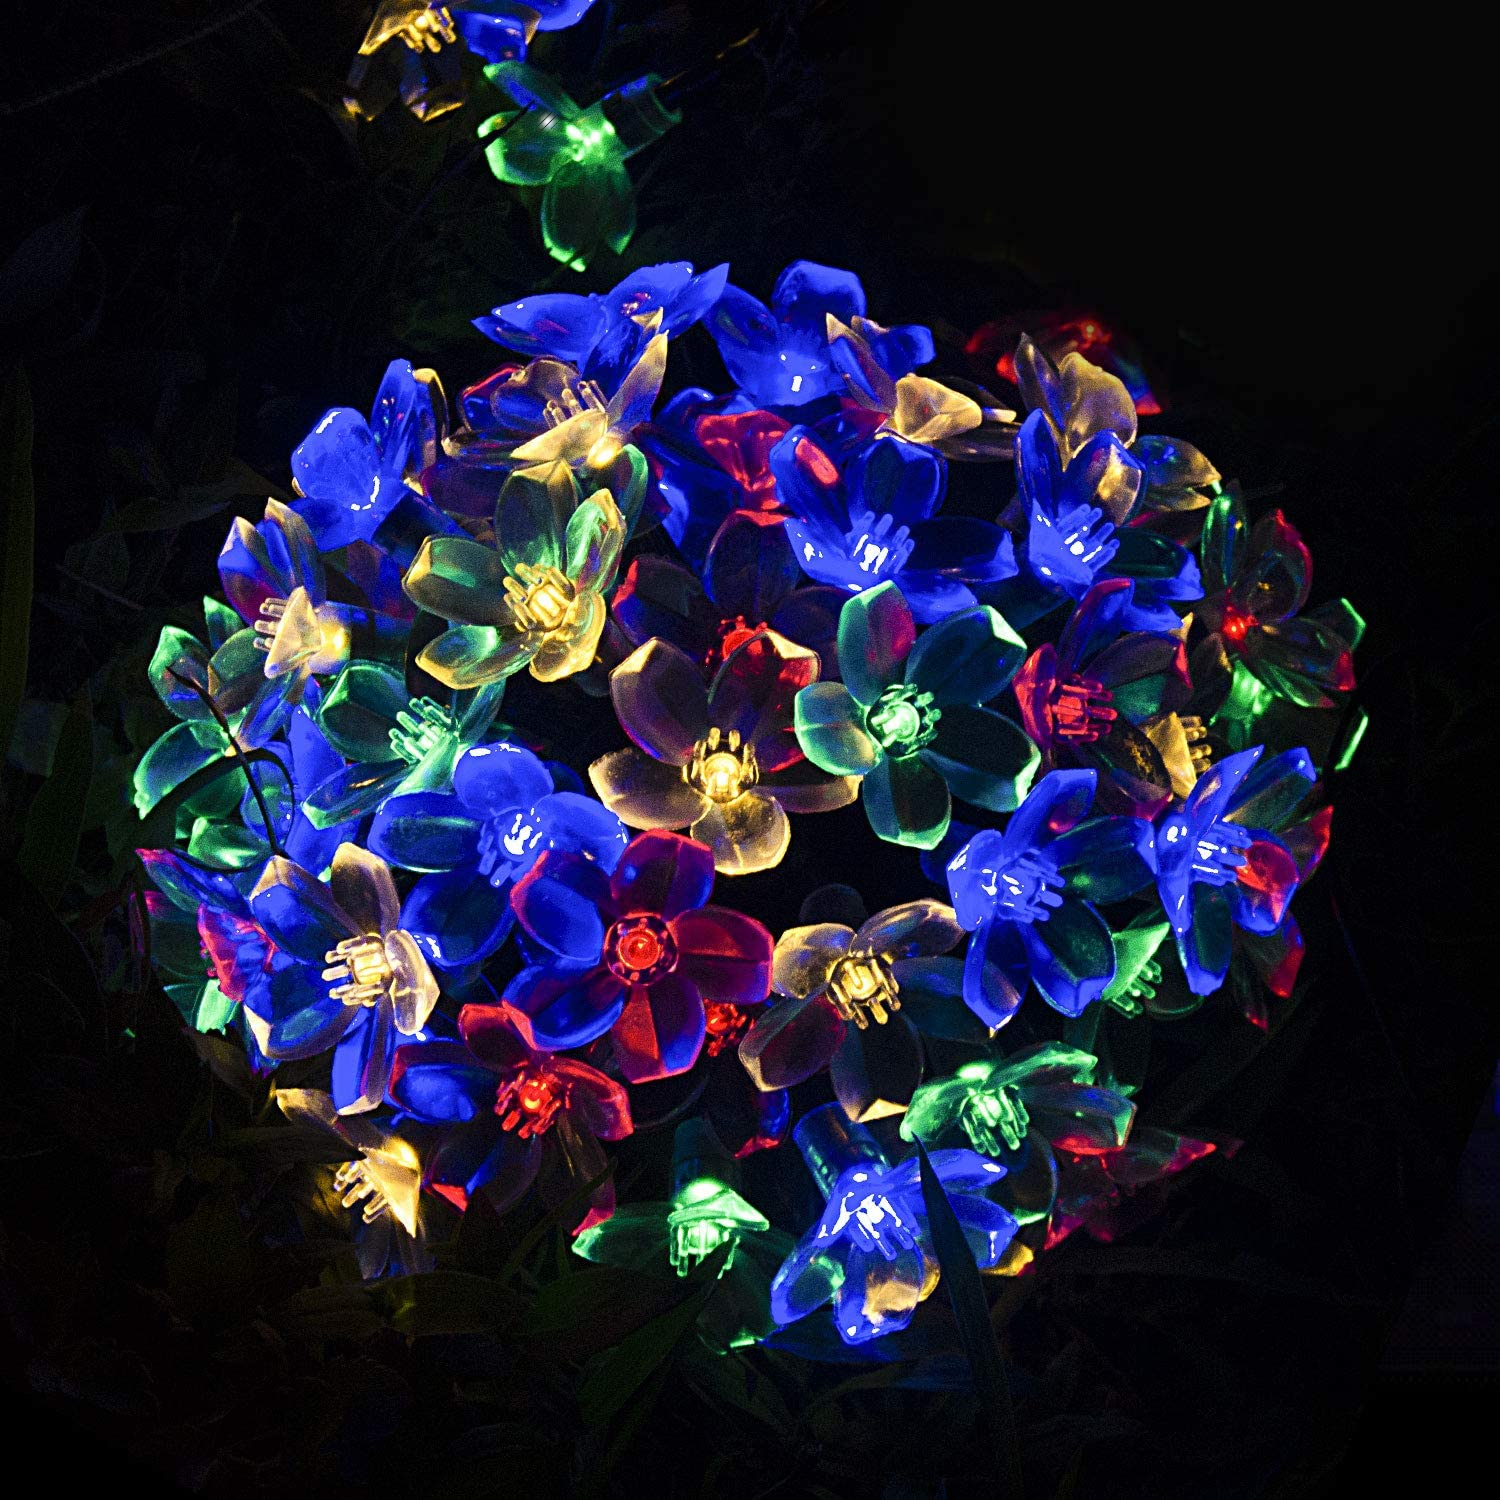 AOPMET Solar String Lights,50 LED Solar Fairy Lights, 32 FT Ultra Long Solar Garden Lights,2 Modes Solar Flower Lights for Outdoor, Home, Lawn, Wedding, Patio, Party and Holiday Decorations-2pack